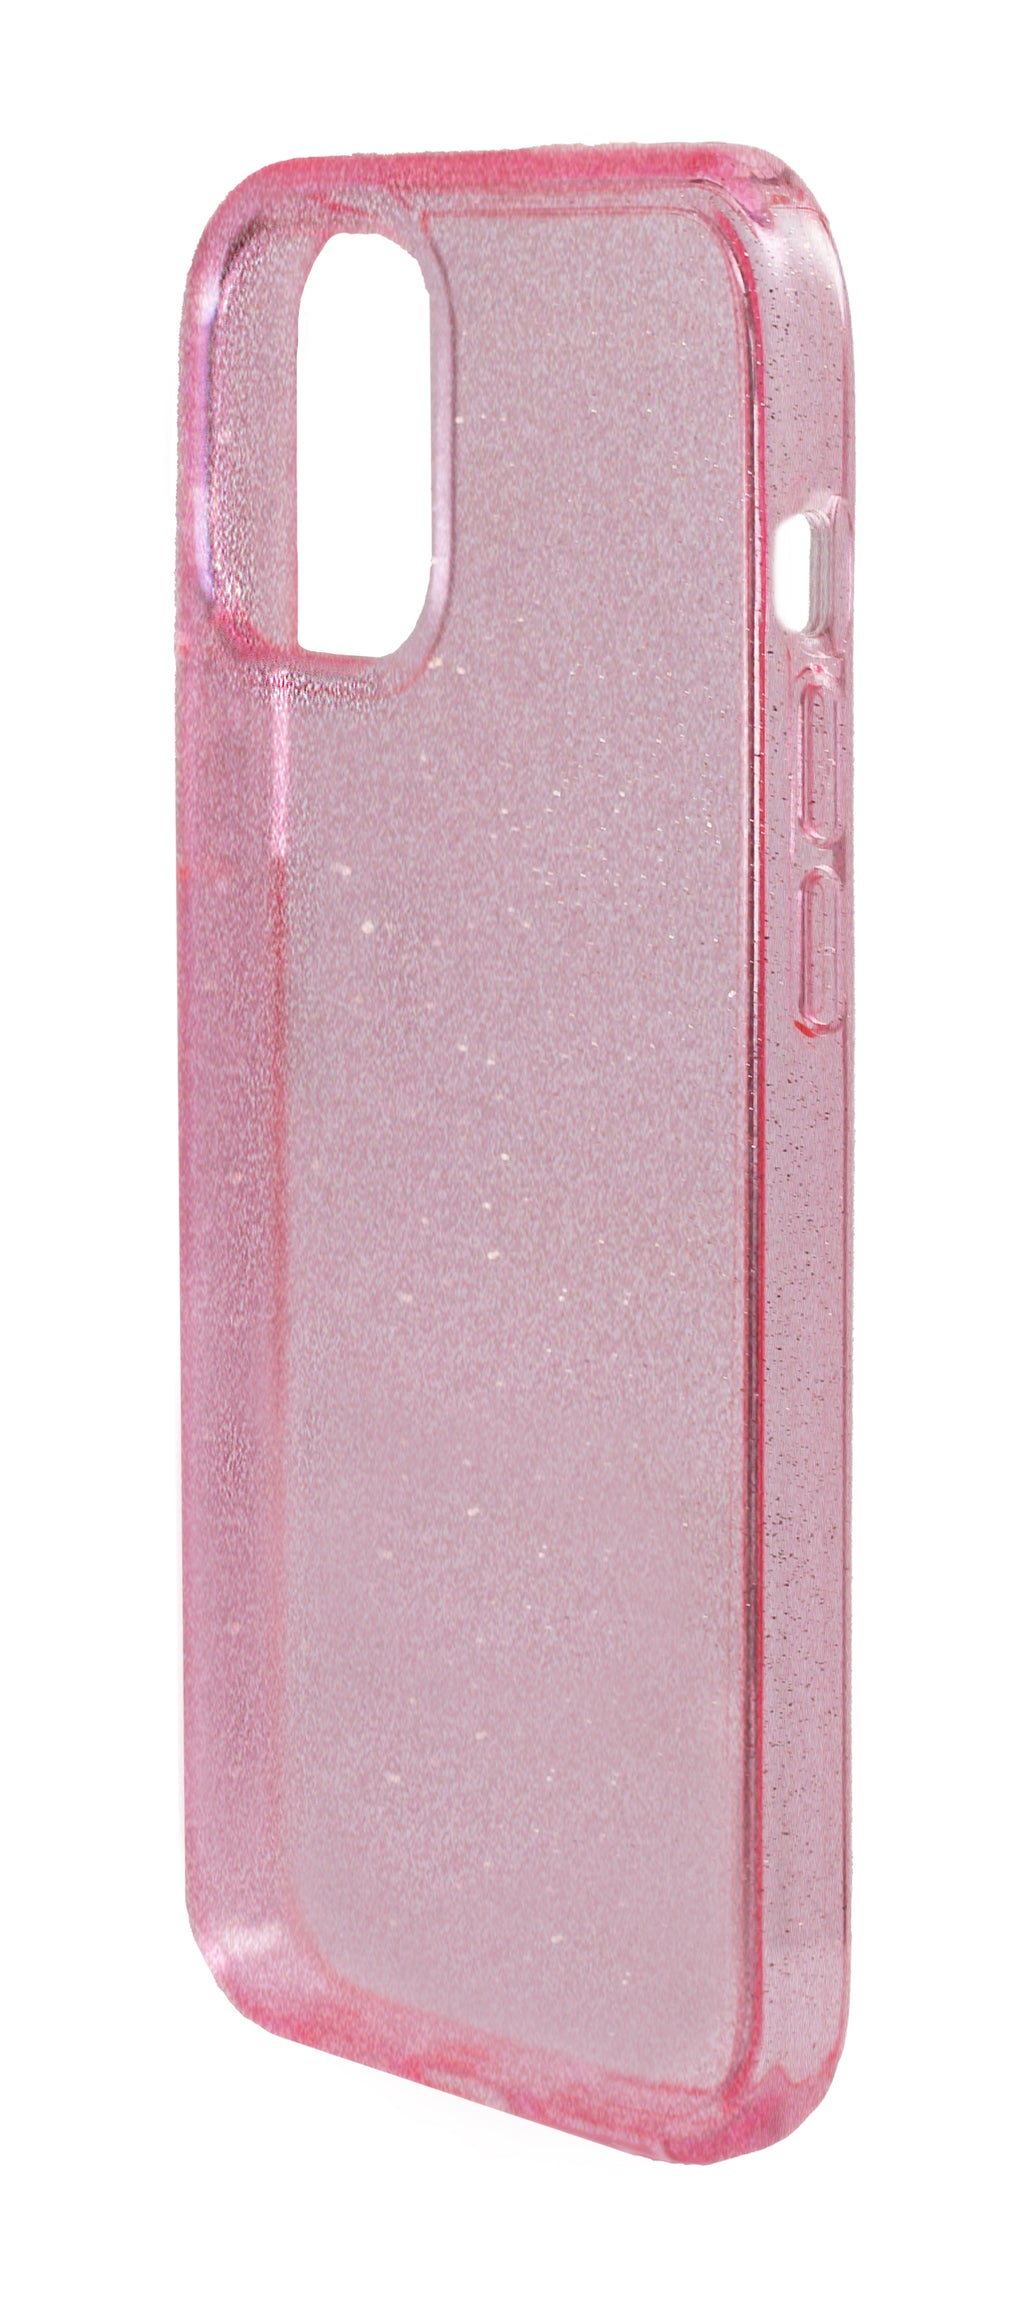 Case Escarchado iPhone 12 Pro Max Rosado